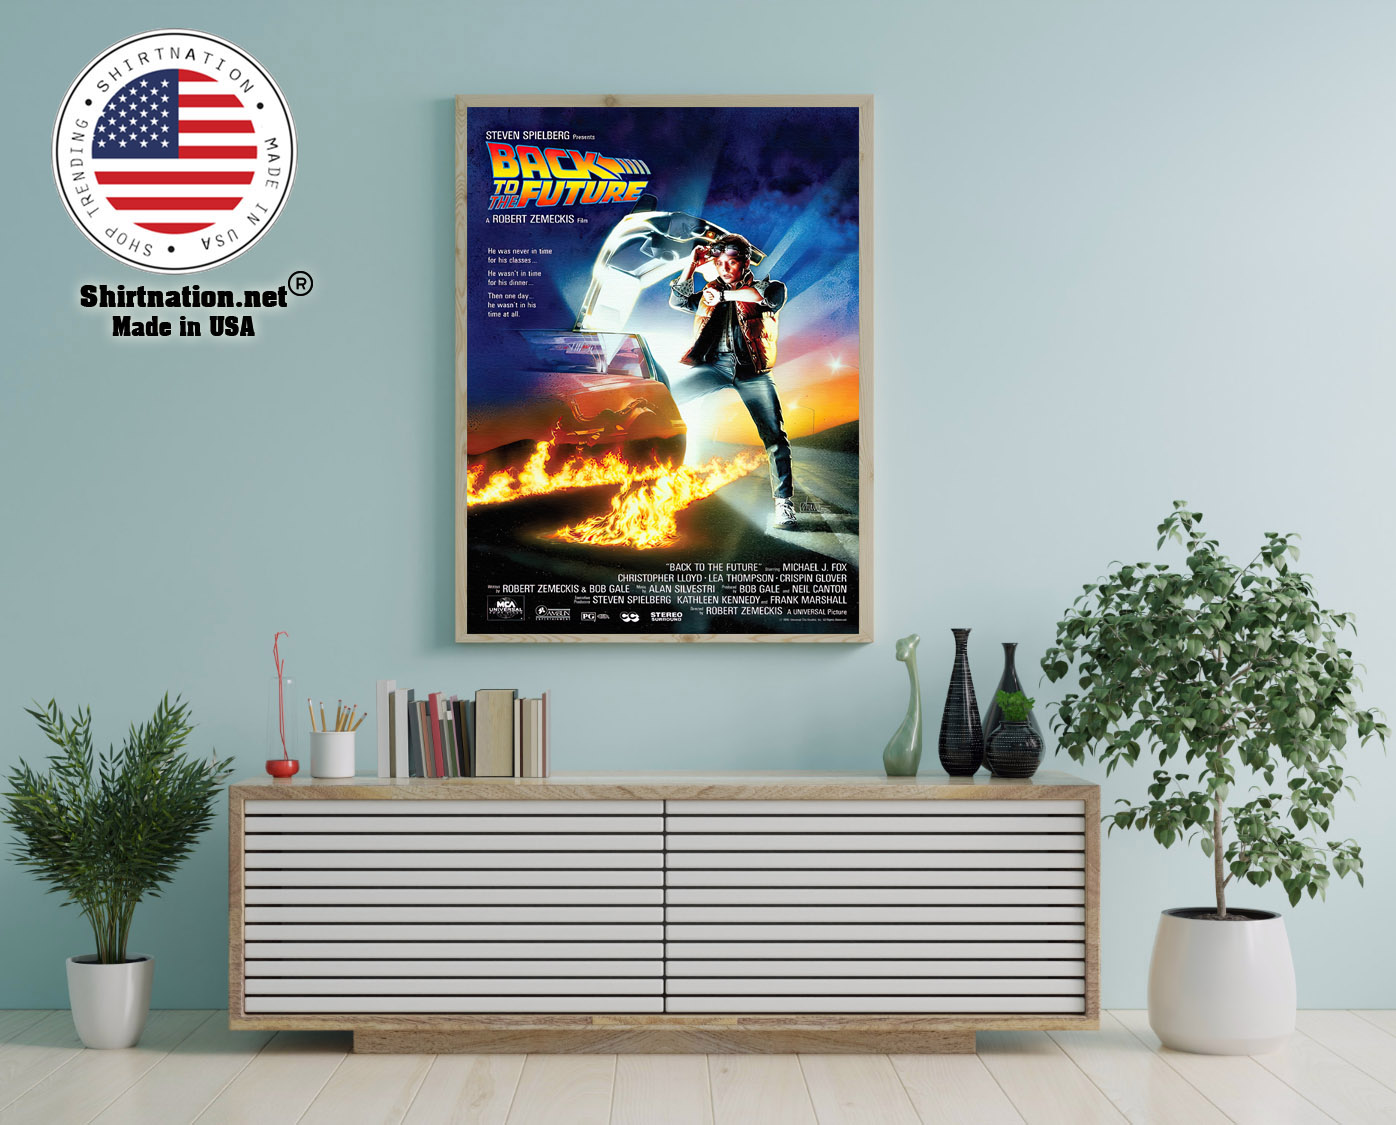 Steven spielberg Back to the future poster 12